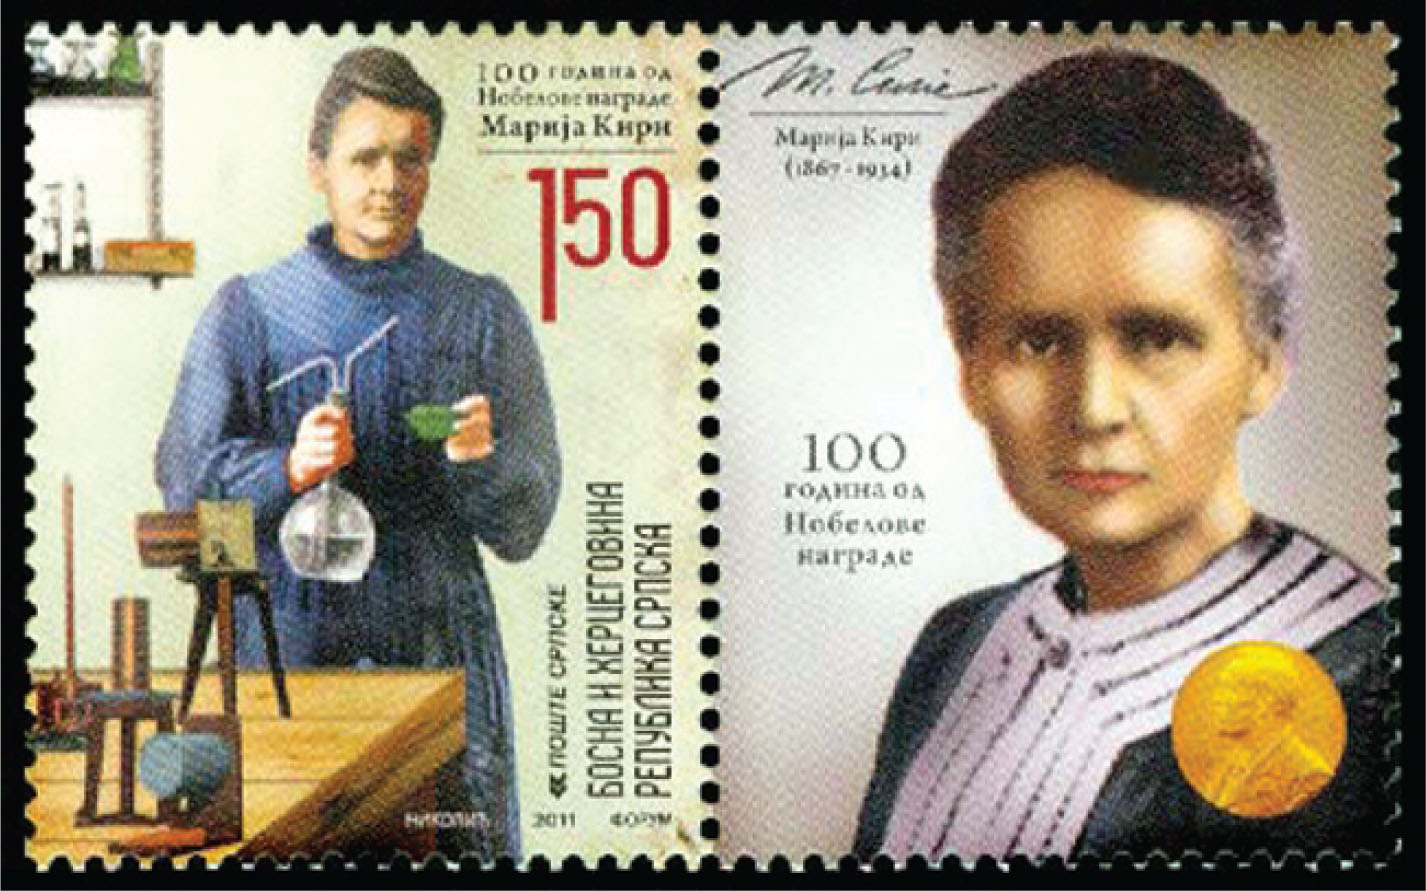 Stamp released in 2011 by Bosnia and Herzegovina to honor Marie Curie and the International Year of Chemistry.